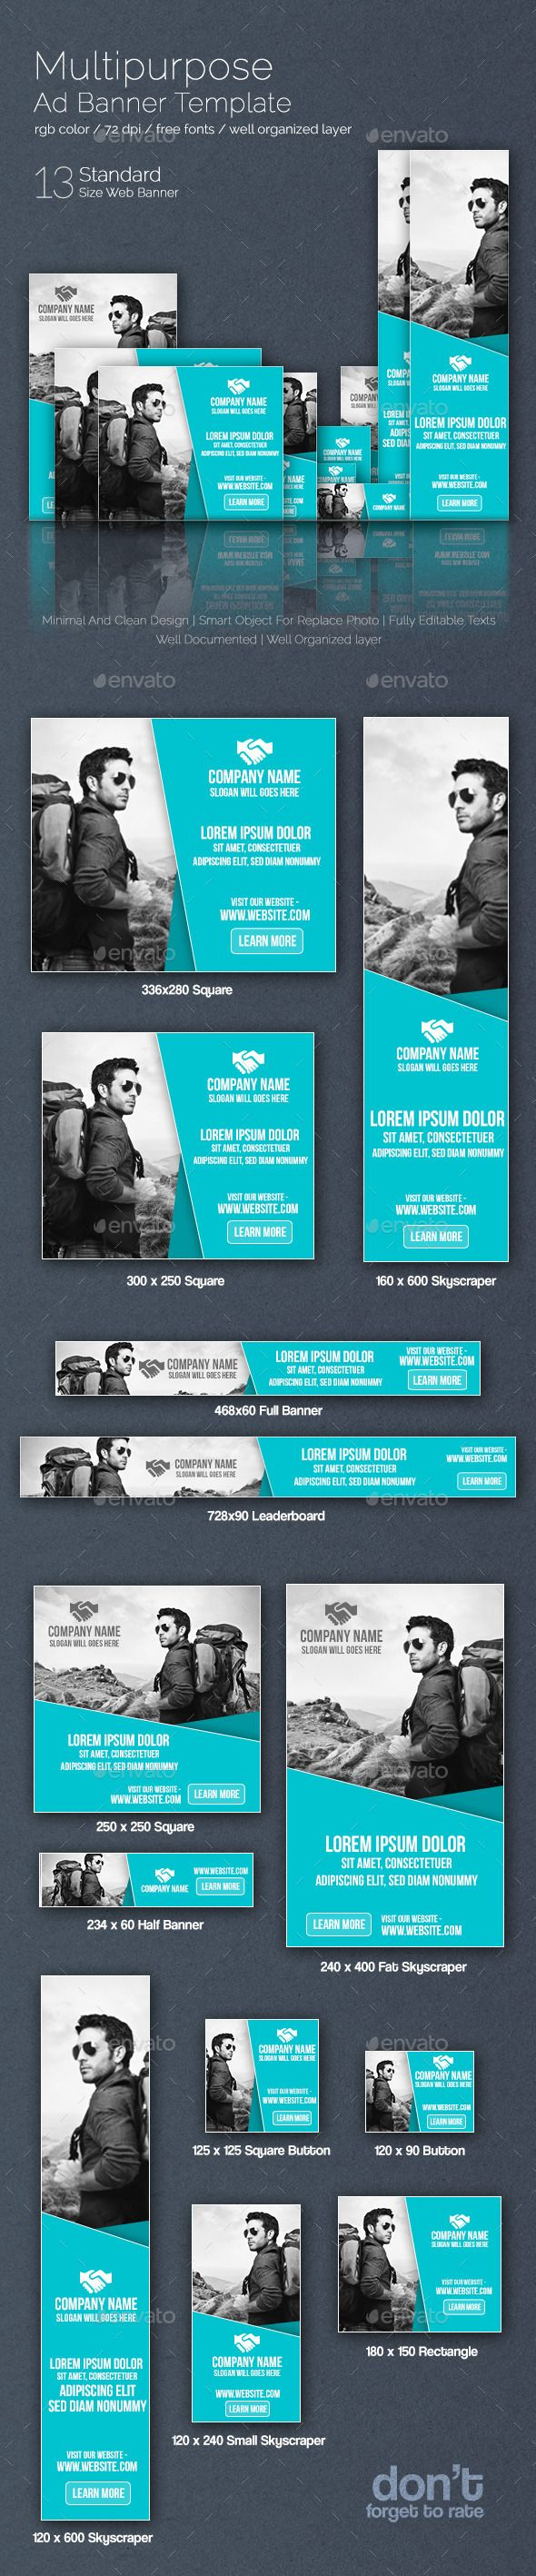 Multipurpose Web Ad Banner Template PSD | Buy and Download: http://graphicriver.net/item/multipurpose-web-ad-banner/8859899?WT.ac=category_thumb&WT.z_author=nazmul57&ref=ksioks